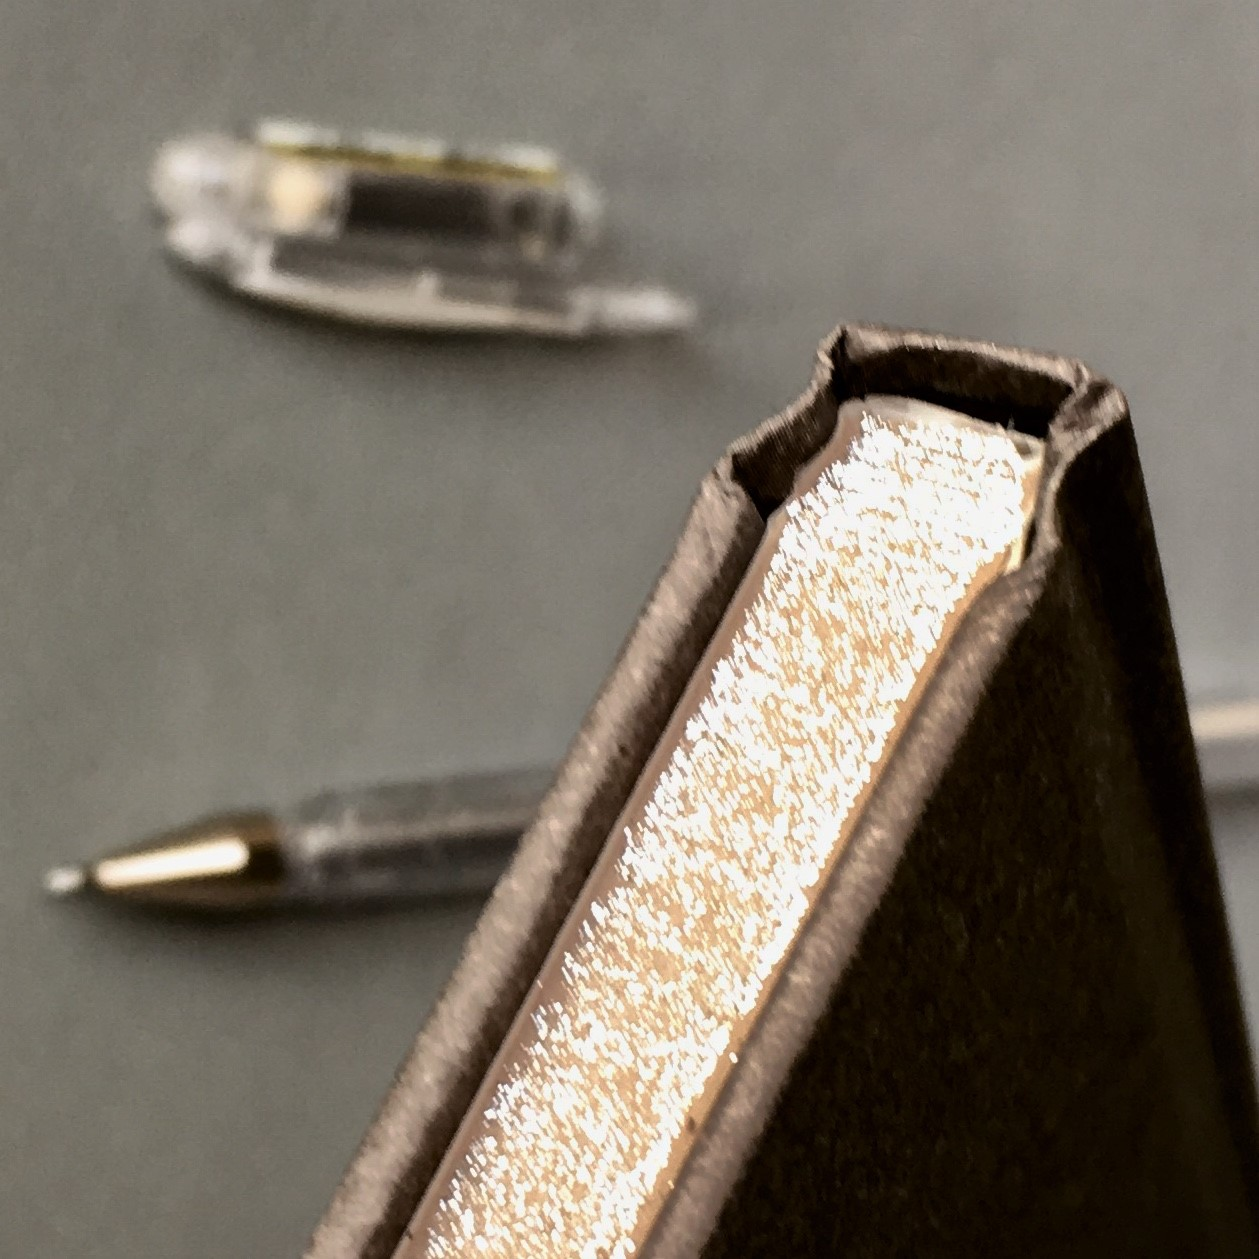 silver glitter edges of the pages